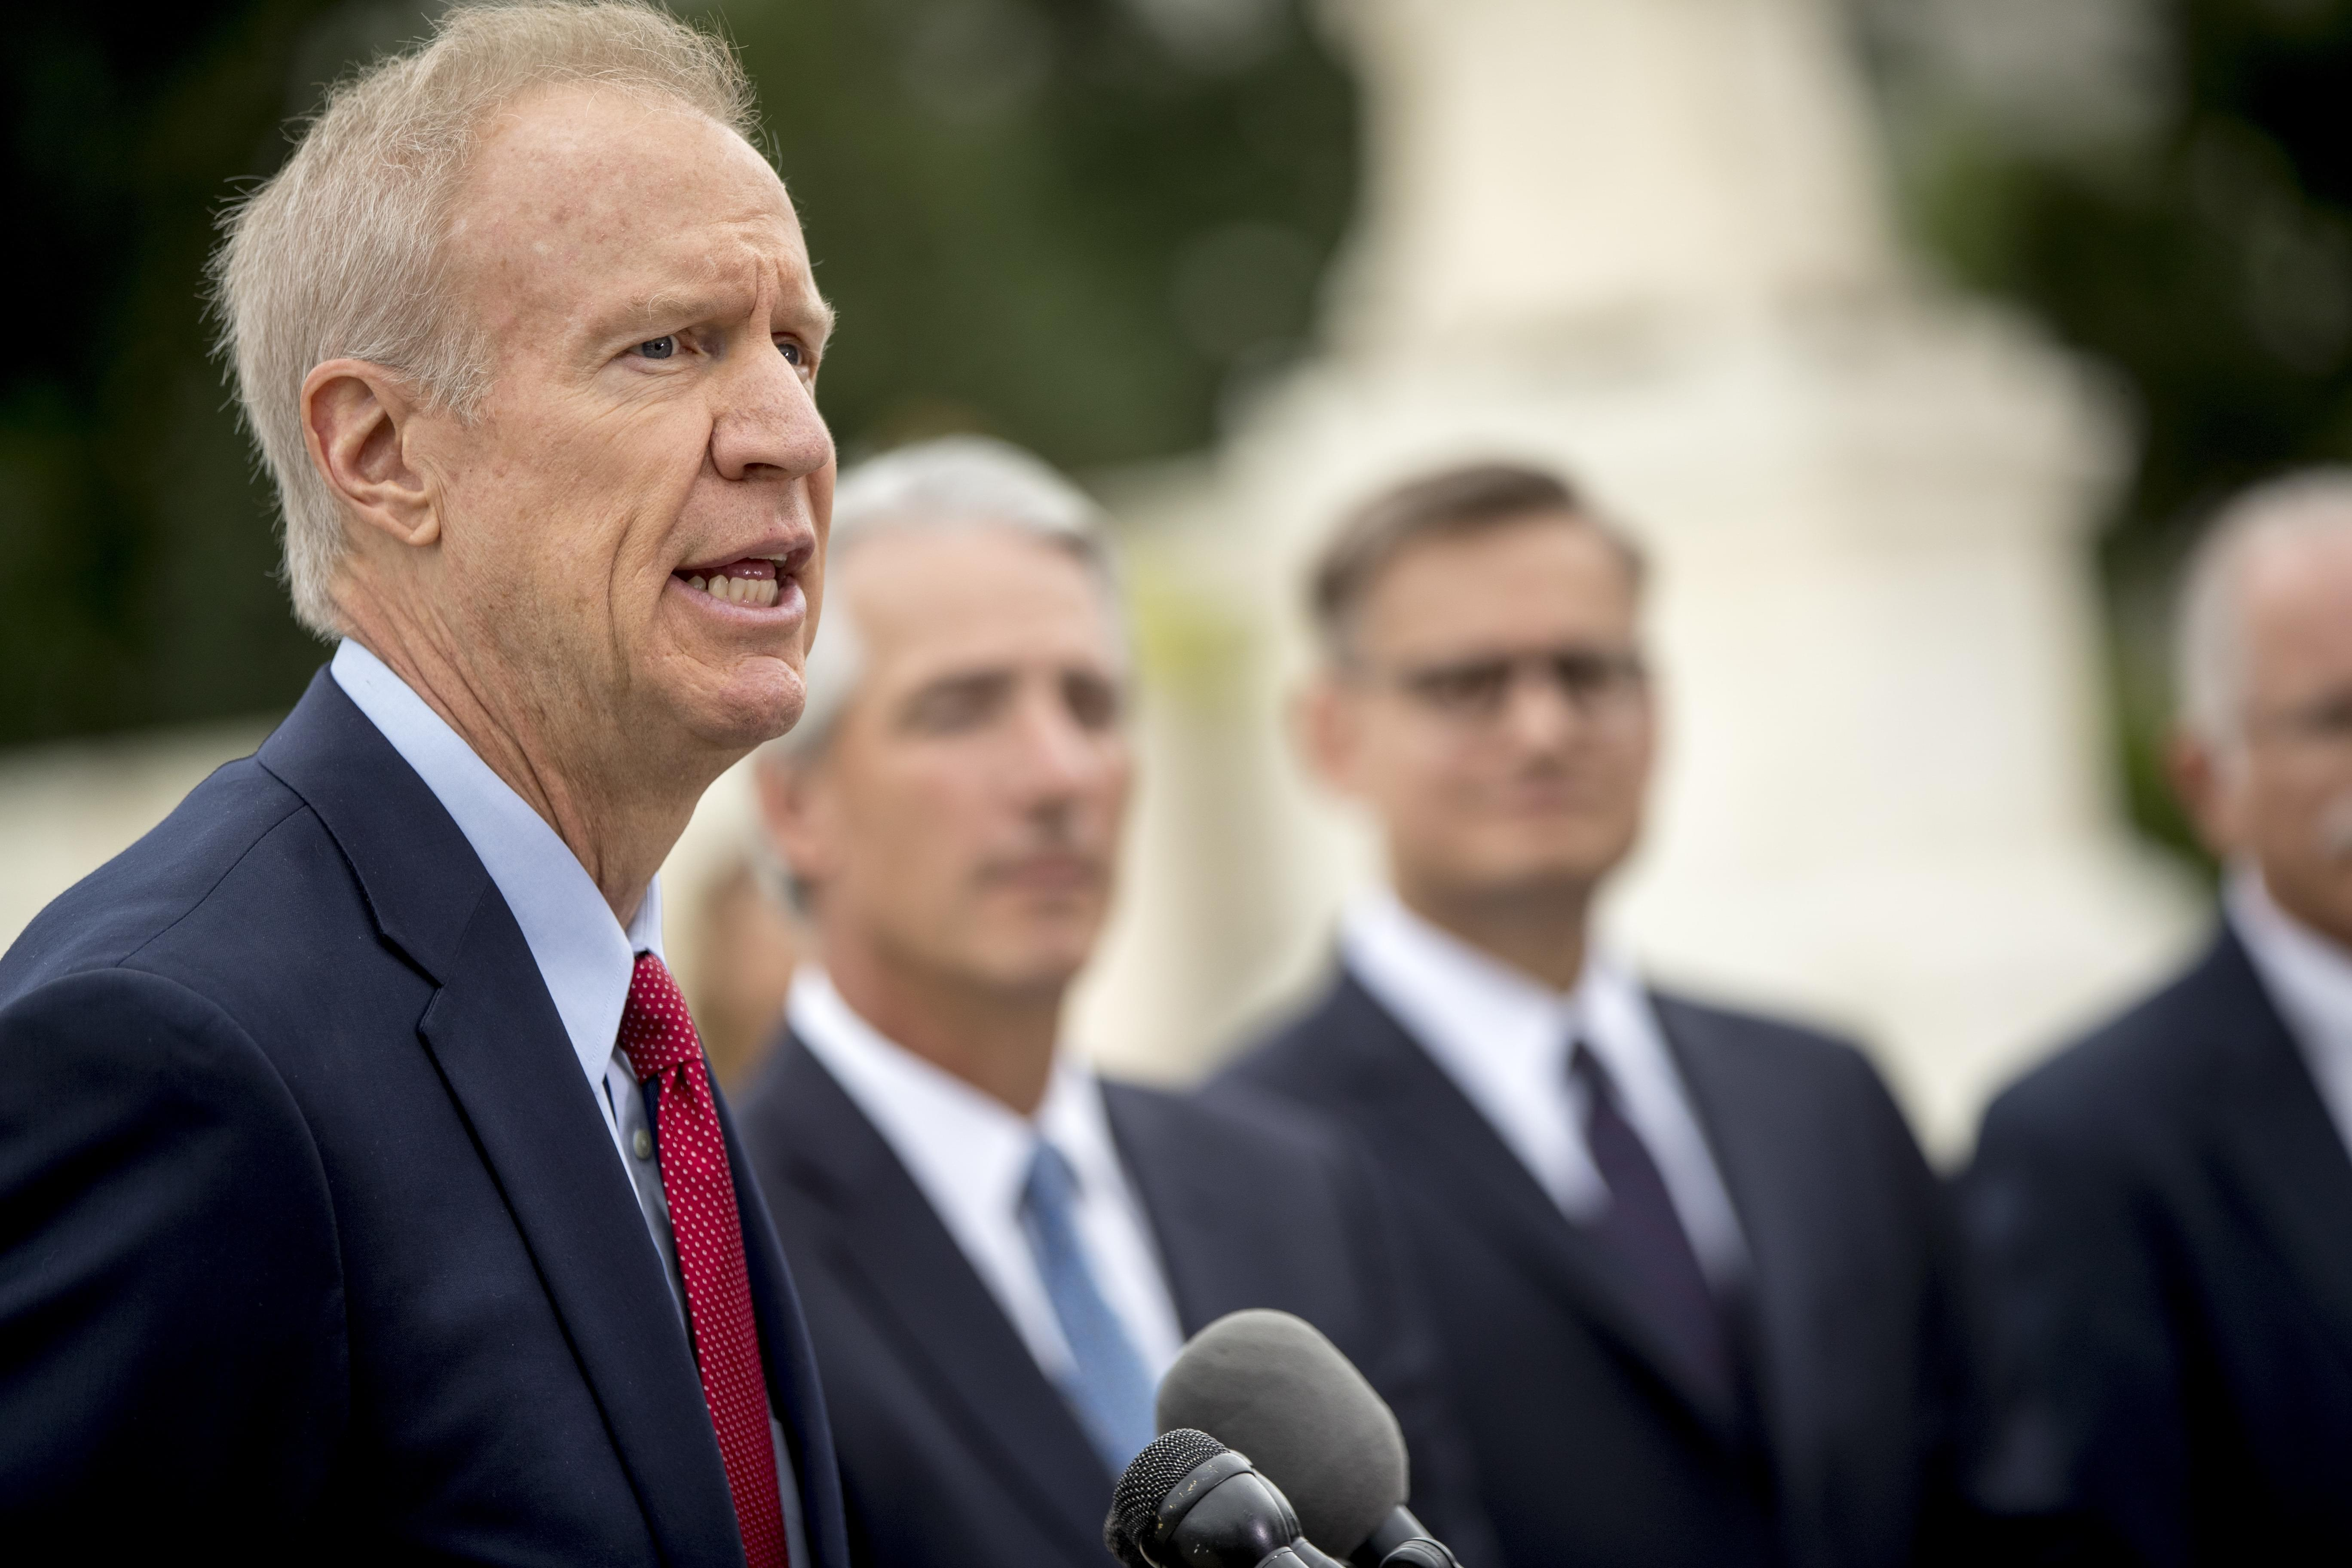 Illinois Gov. Bruce Rauner, left, accompanied by Liberty Justice Center founder and chairman John Tillman, second from left, and Liberty Justice Center's Director of Litigation Jacob Huebert, right, speaks outside the Supreme Court after the cou